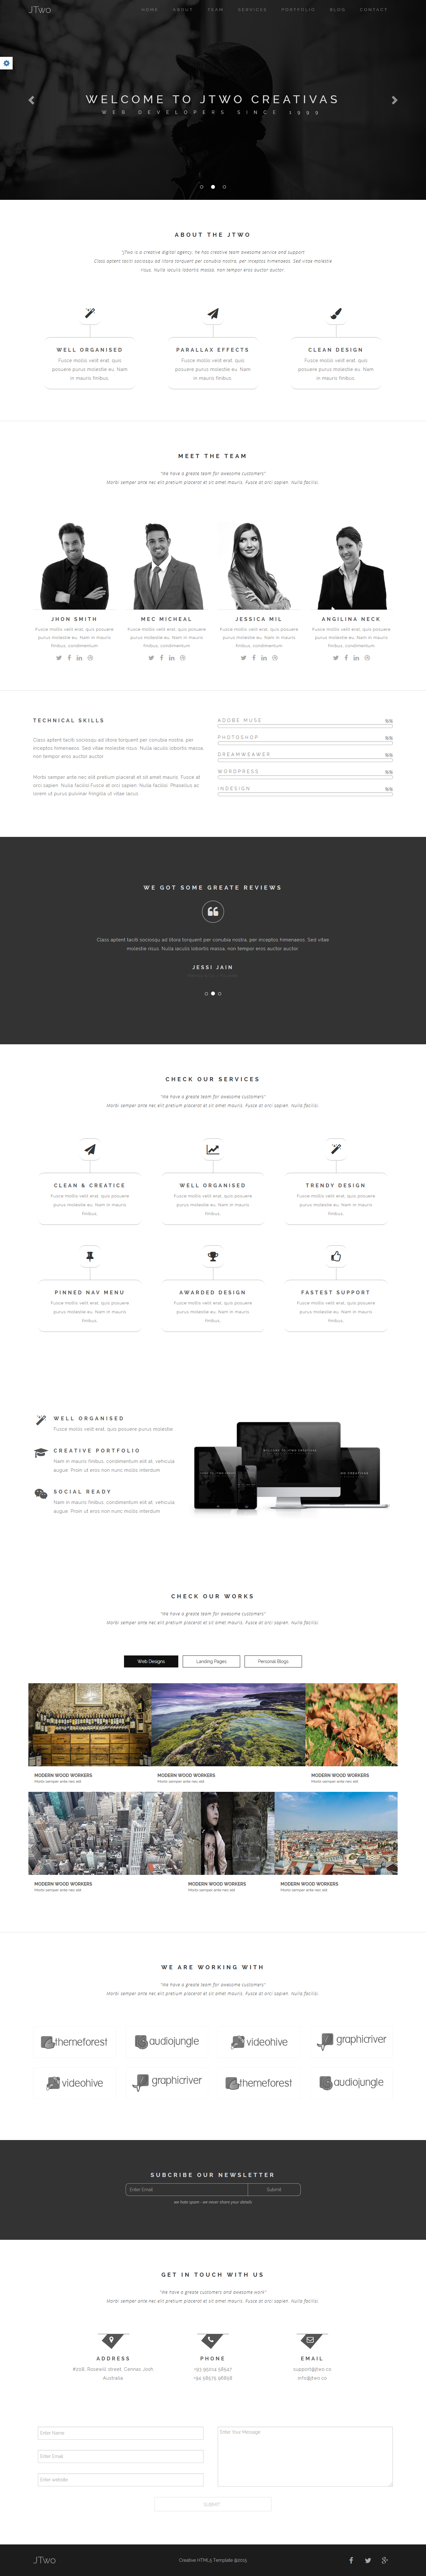 jTwo - One Page Parallax Template - 1